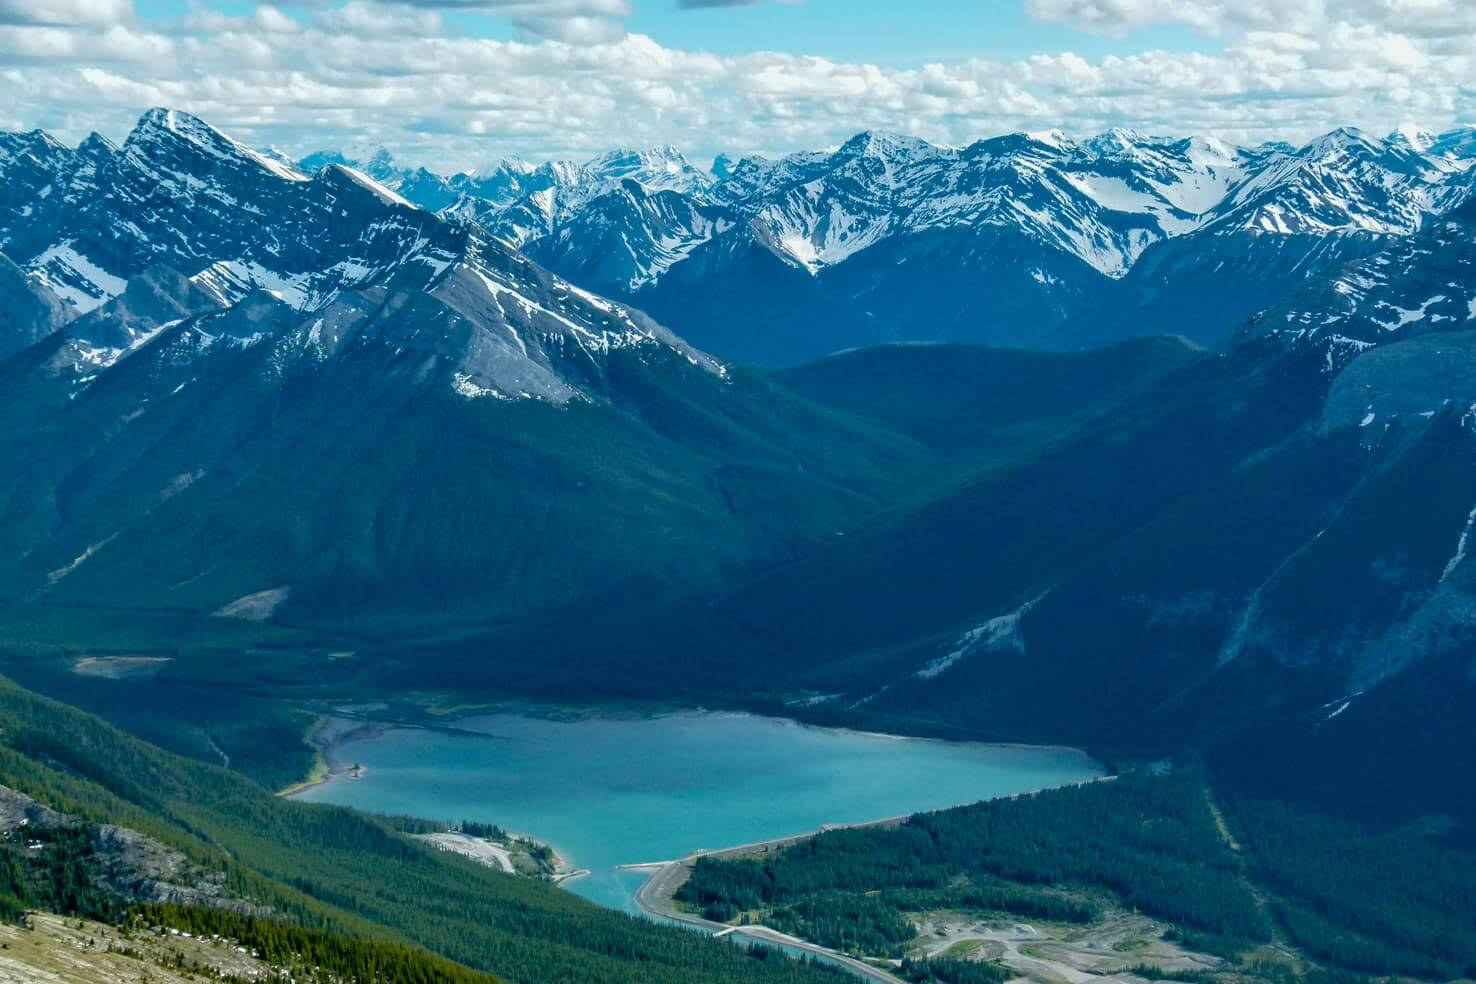 100 best things to do in Banff National Park, Canada - Hike up to the summit of Ha Ling Peak